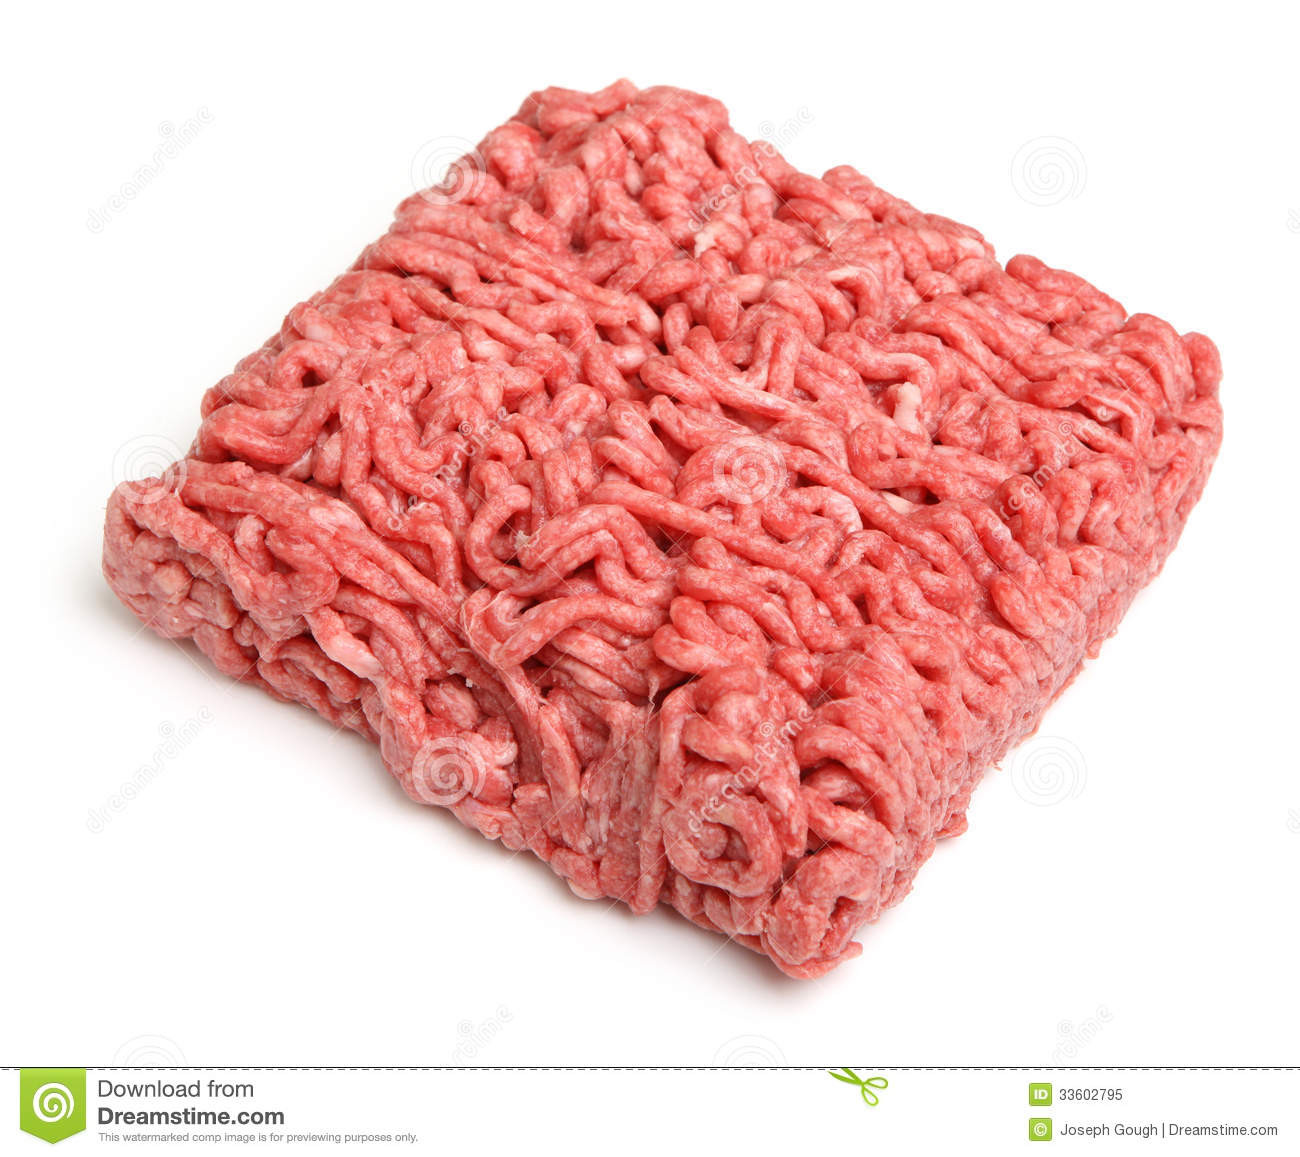 Raw Ground Beef  The gallery for Raw Ground Beef